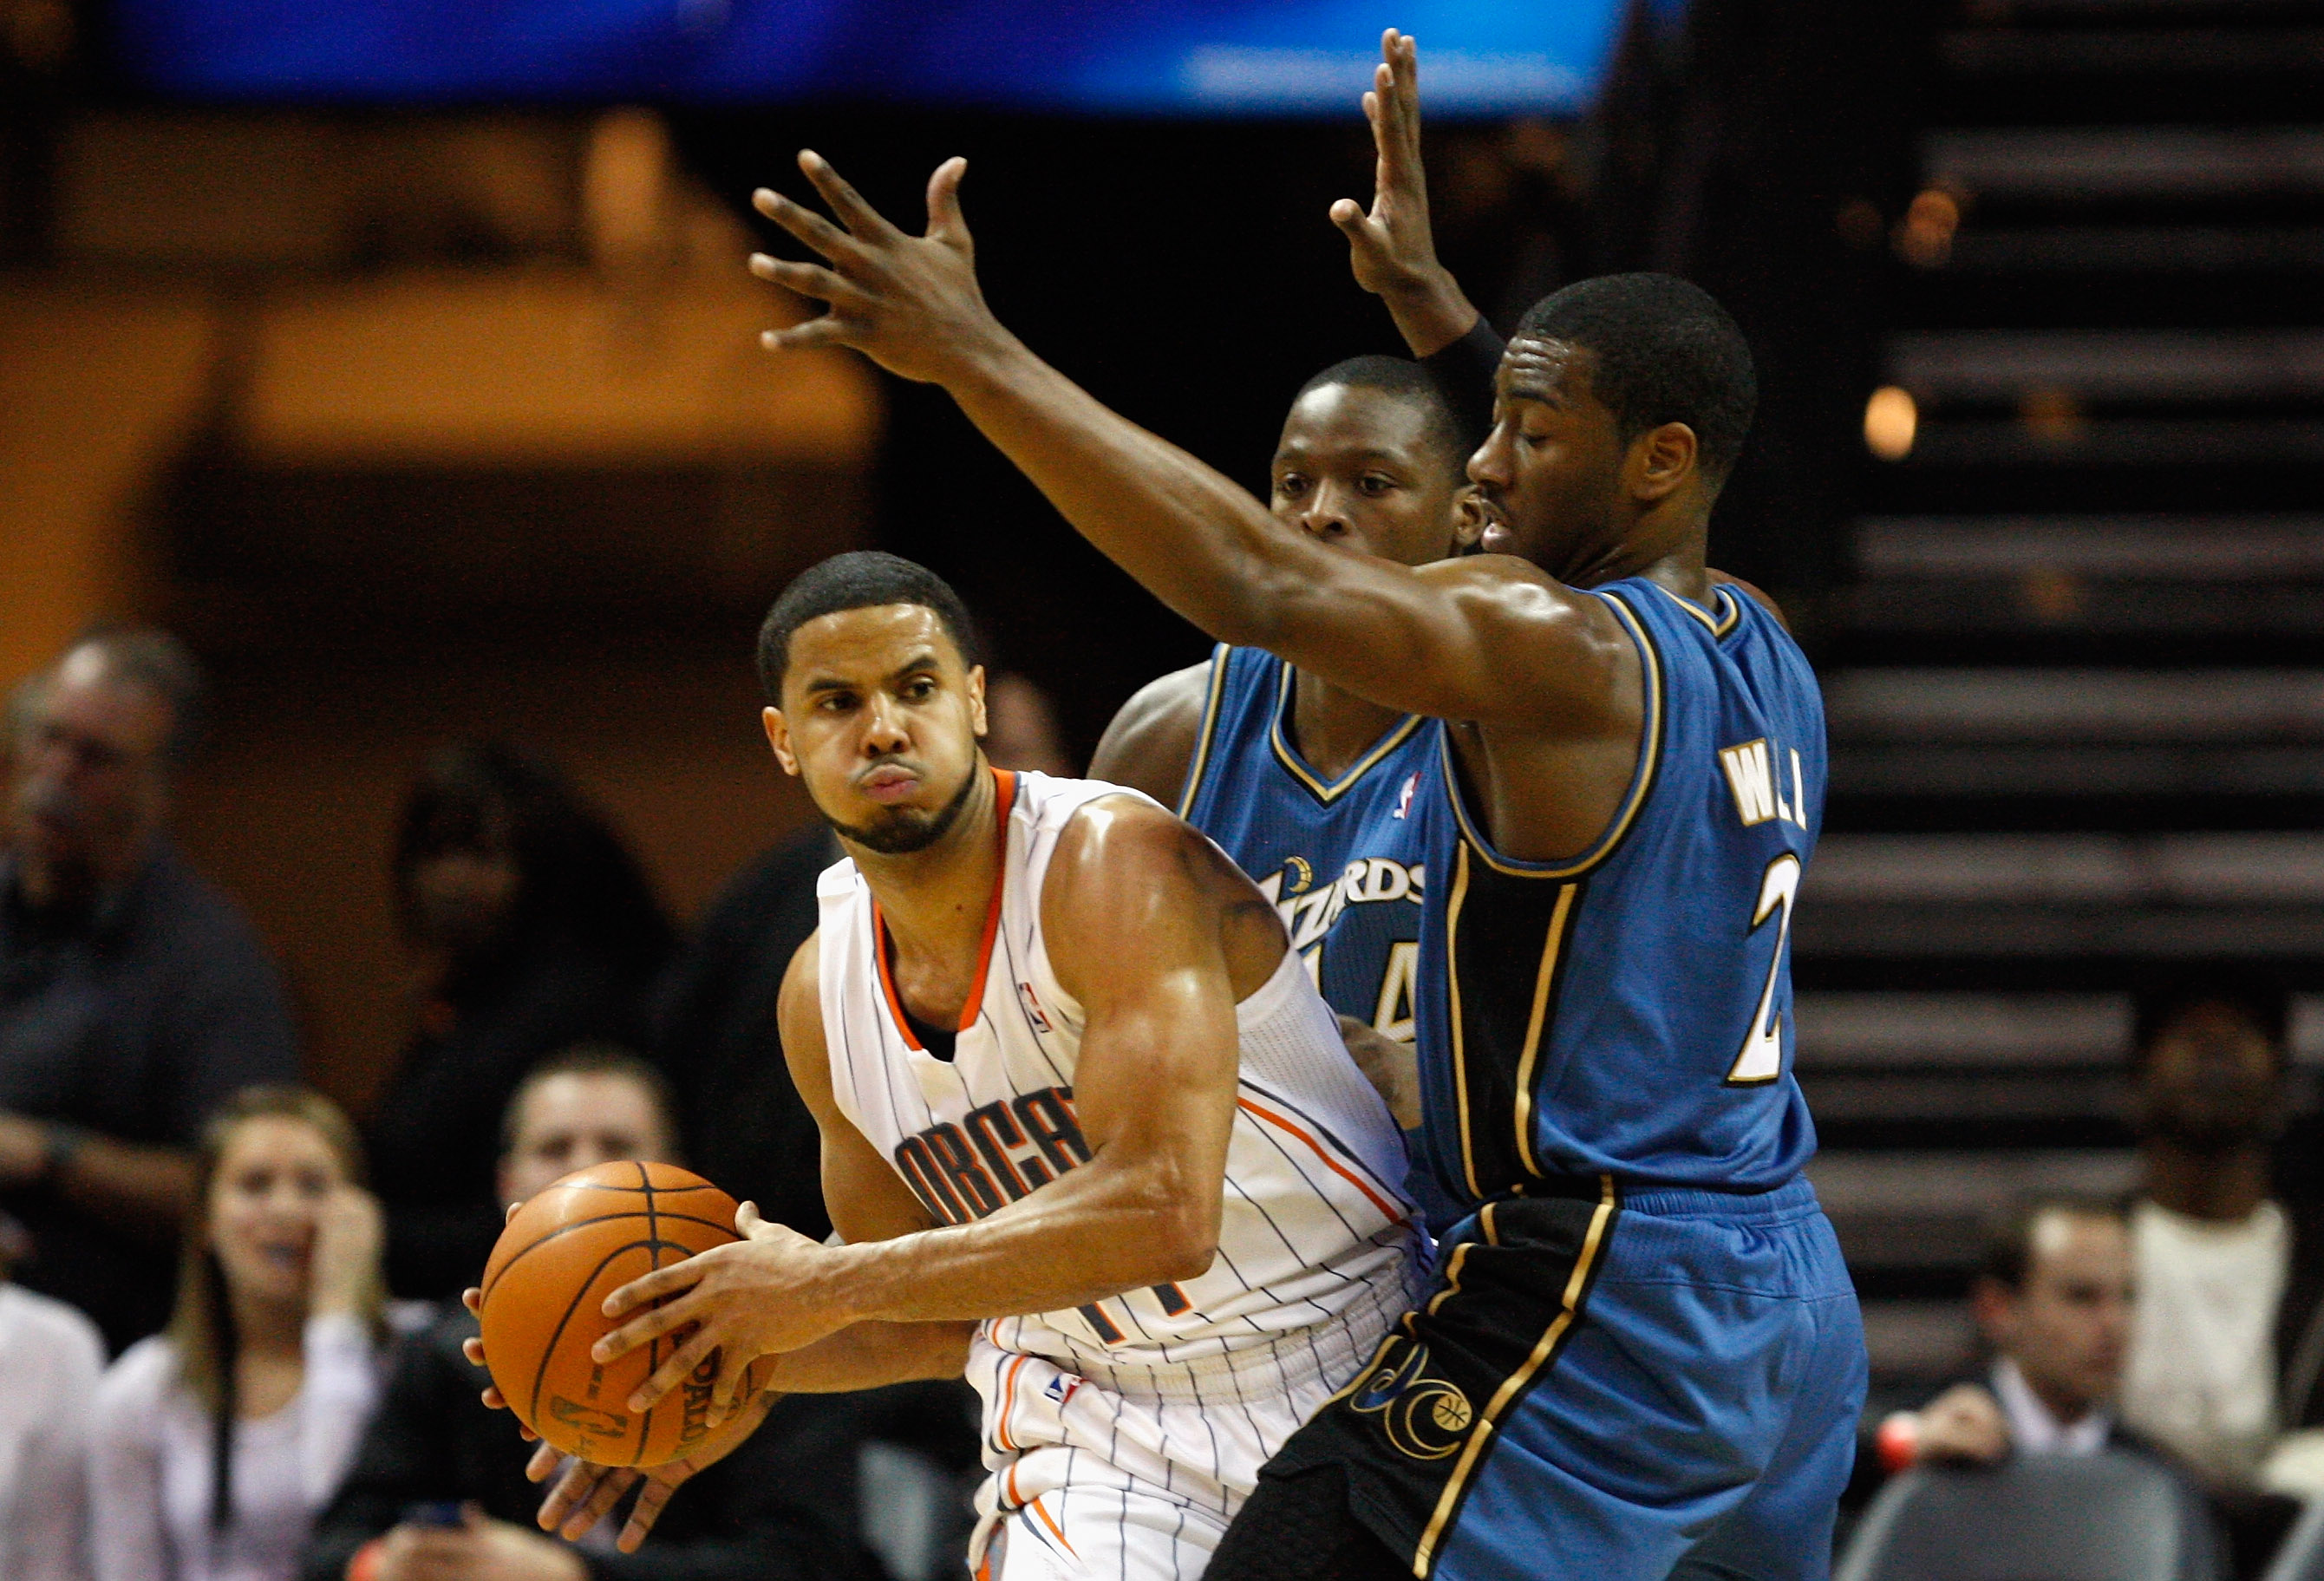 CHARLOTTE, NC - JANUARY 08:  Teammates John Wall #2 and Al Thornton #14 of the Washington Wizards trap D.J. Augustin #14 of the Charlotte Bobcats during their game at Time Warner Cable Arena on January 8, 2011 in Charlotte, North Carolina. NOTE TO USER: U